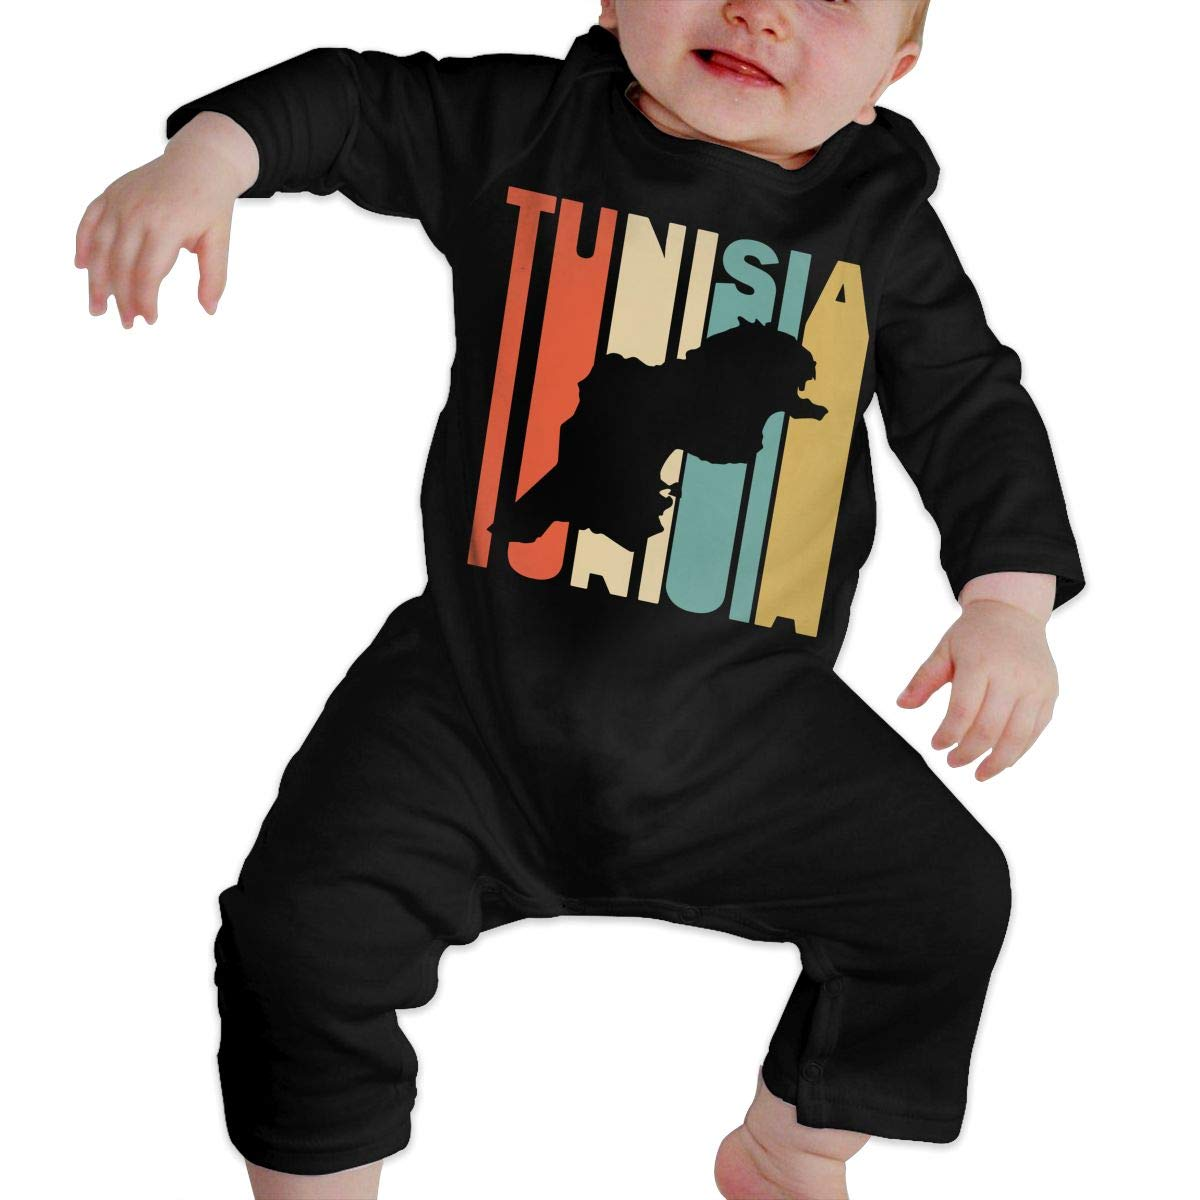 Long Sleeve Cotton Rompers for Unisex Baby Soft Retro Style Tunisia Silhouette Onesies